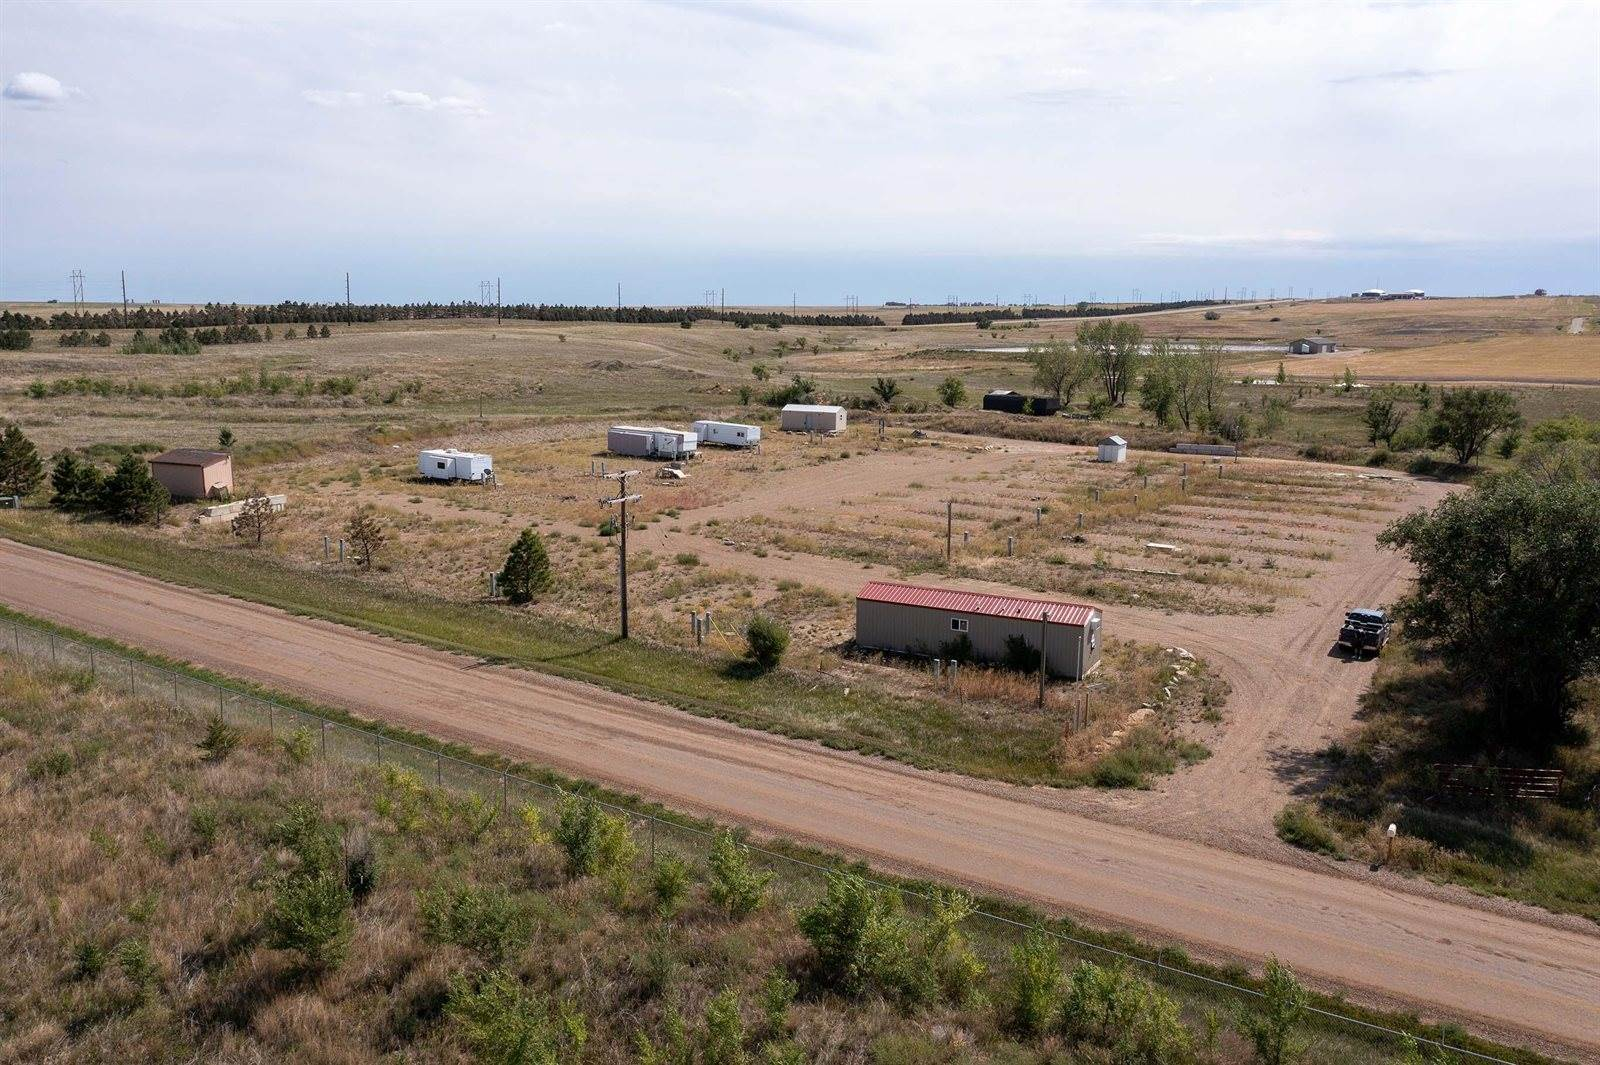 14352 42nd St NW, Alexander, ND 58831